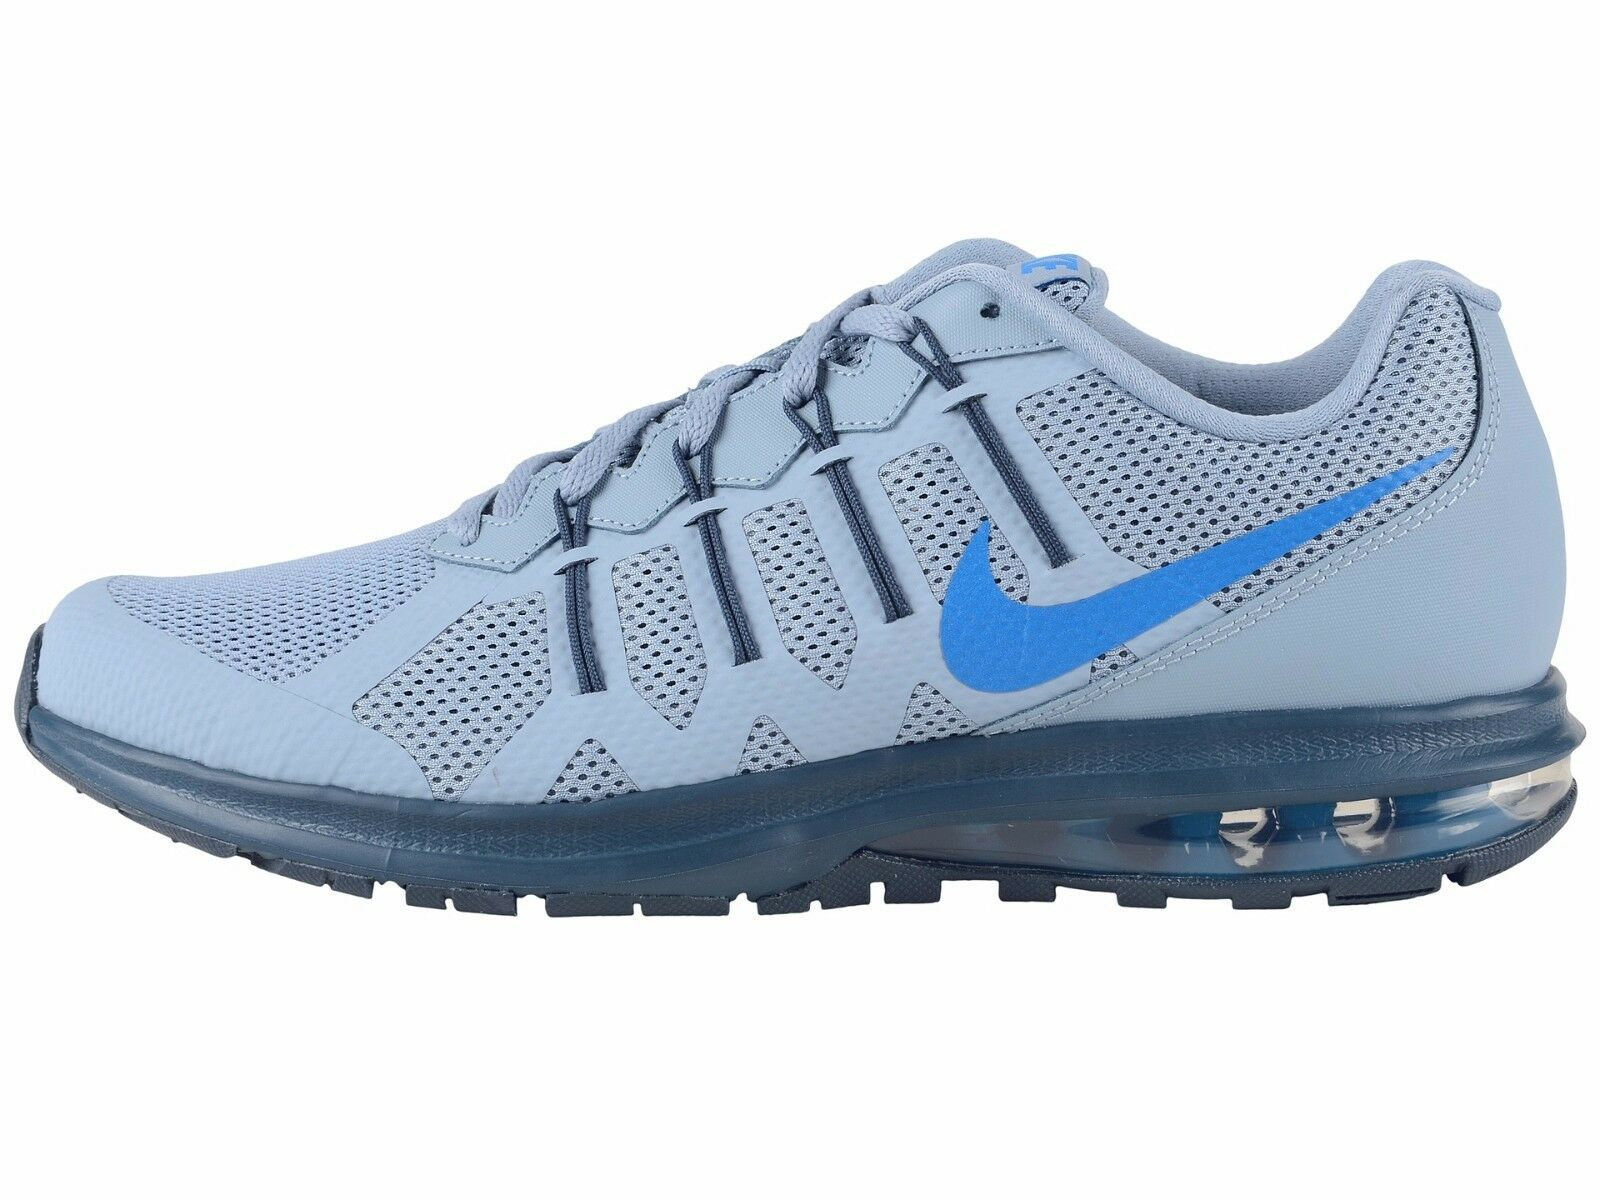 Nike  Sneakers  Mens  Running  NEW Grey Blue /Photo Blue Men's Size USA  11